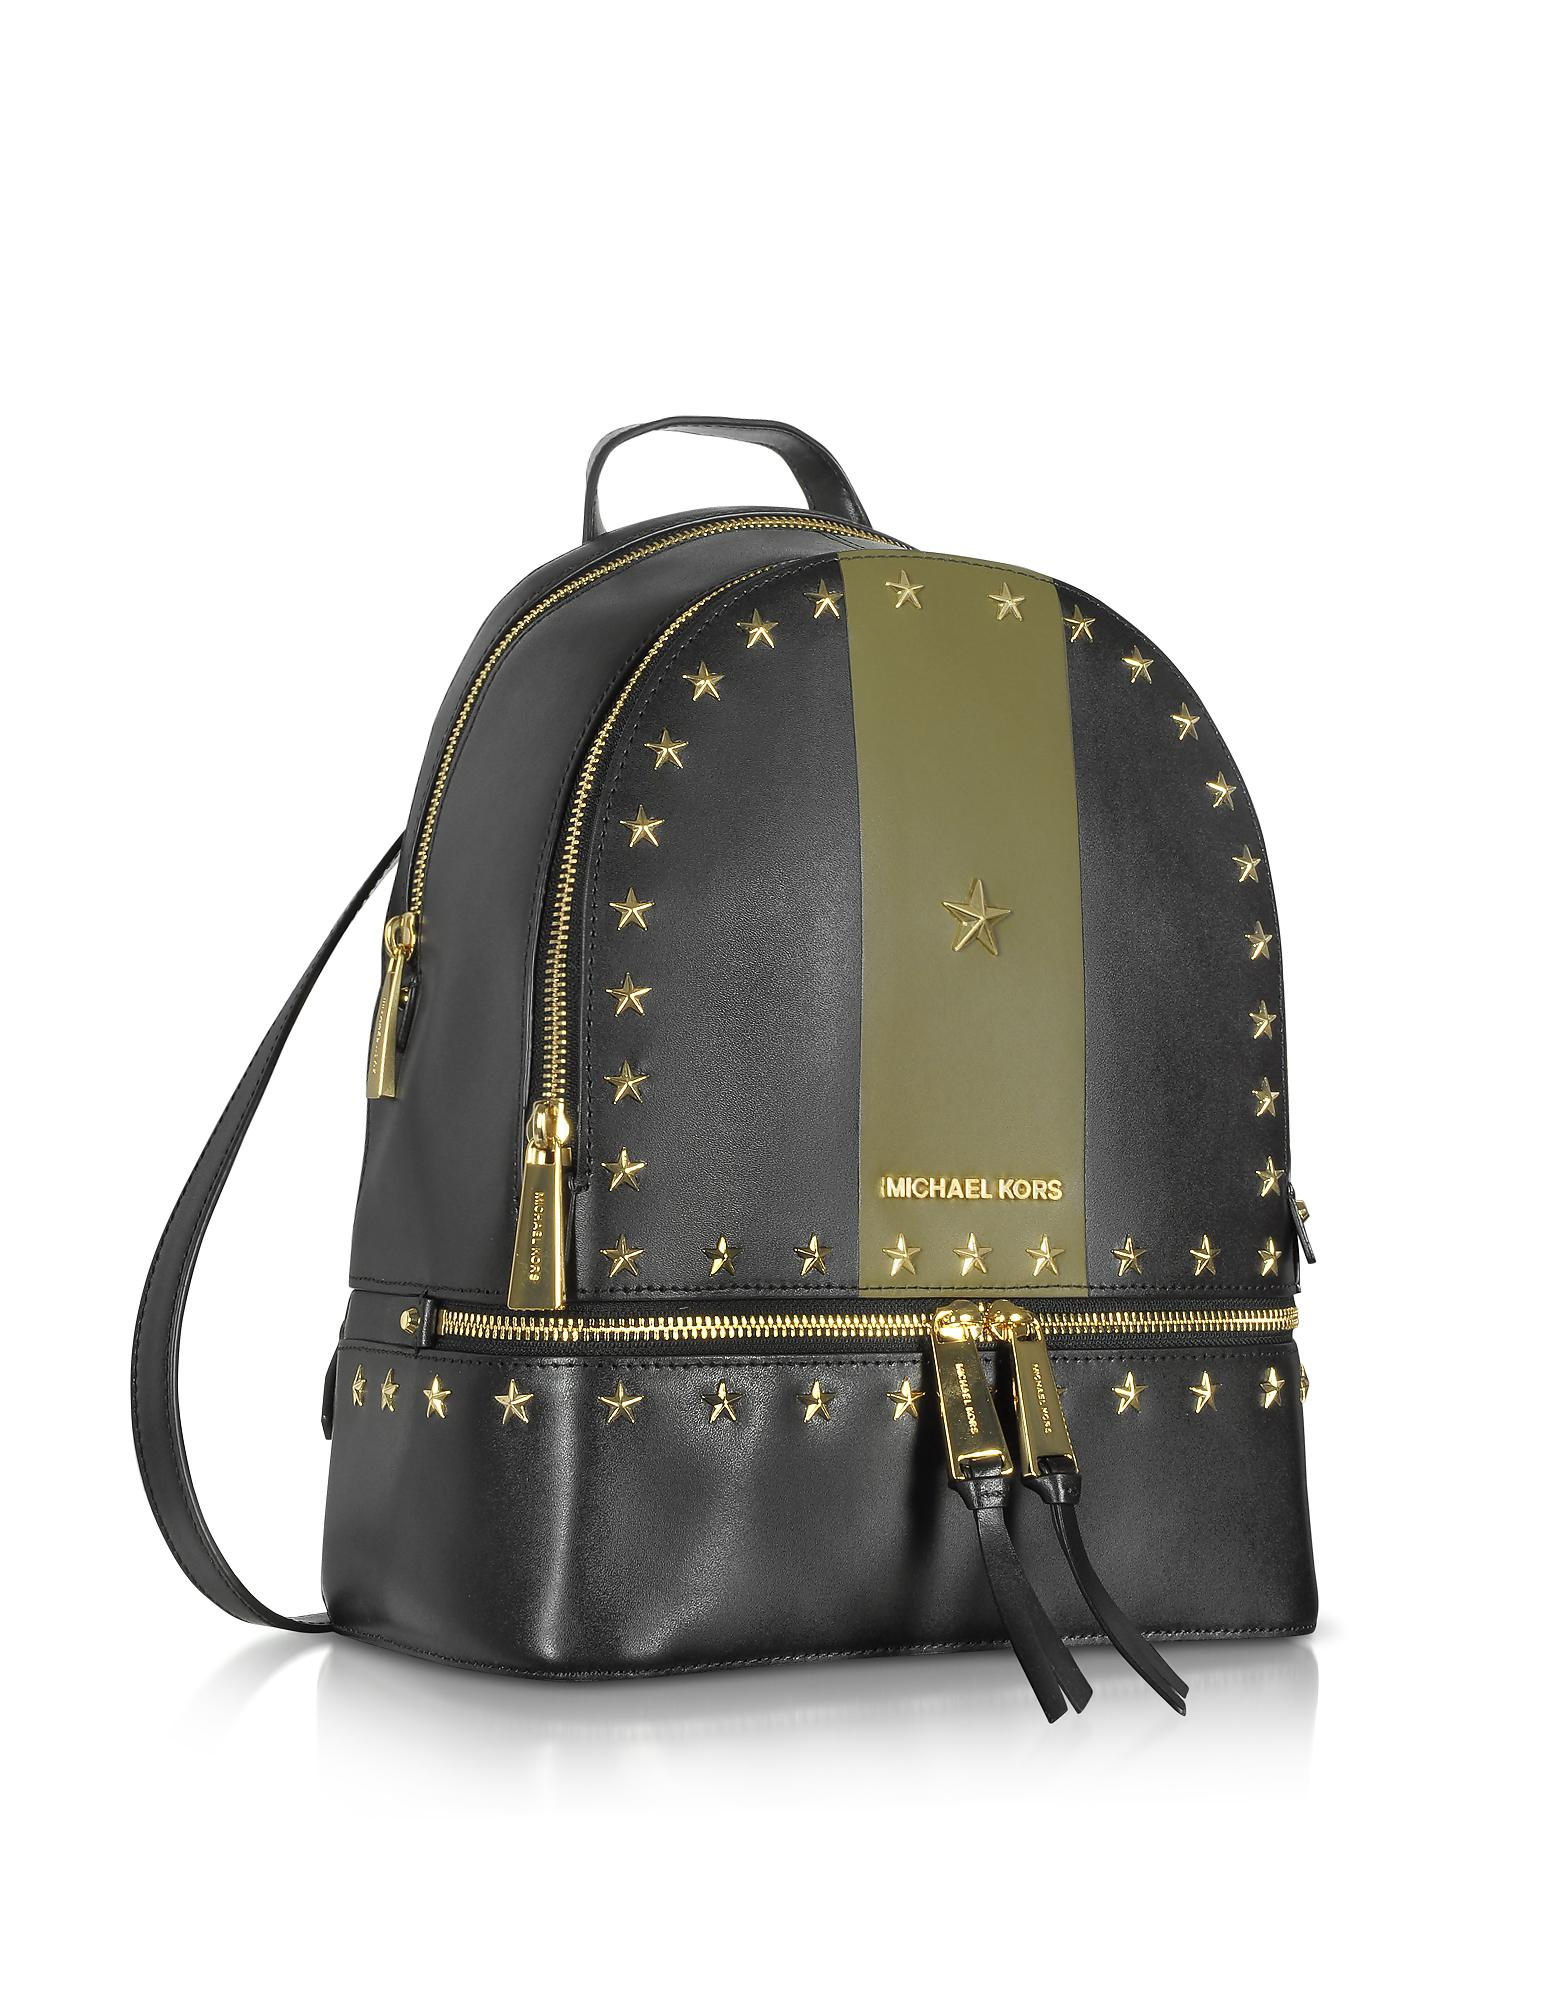 4ee12b29d53f Lyst - Michael Kors Rhea Zip Medium Black And Olive Leather Backpack ...